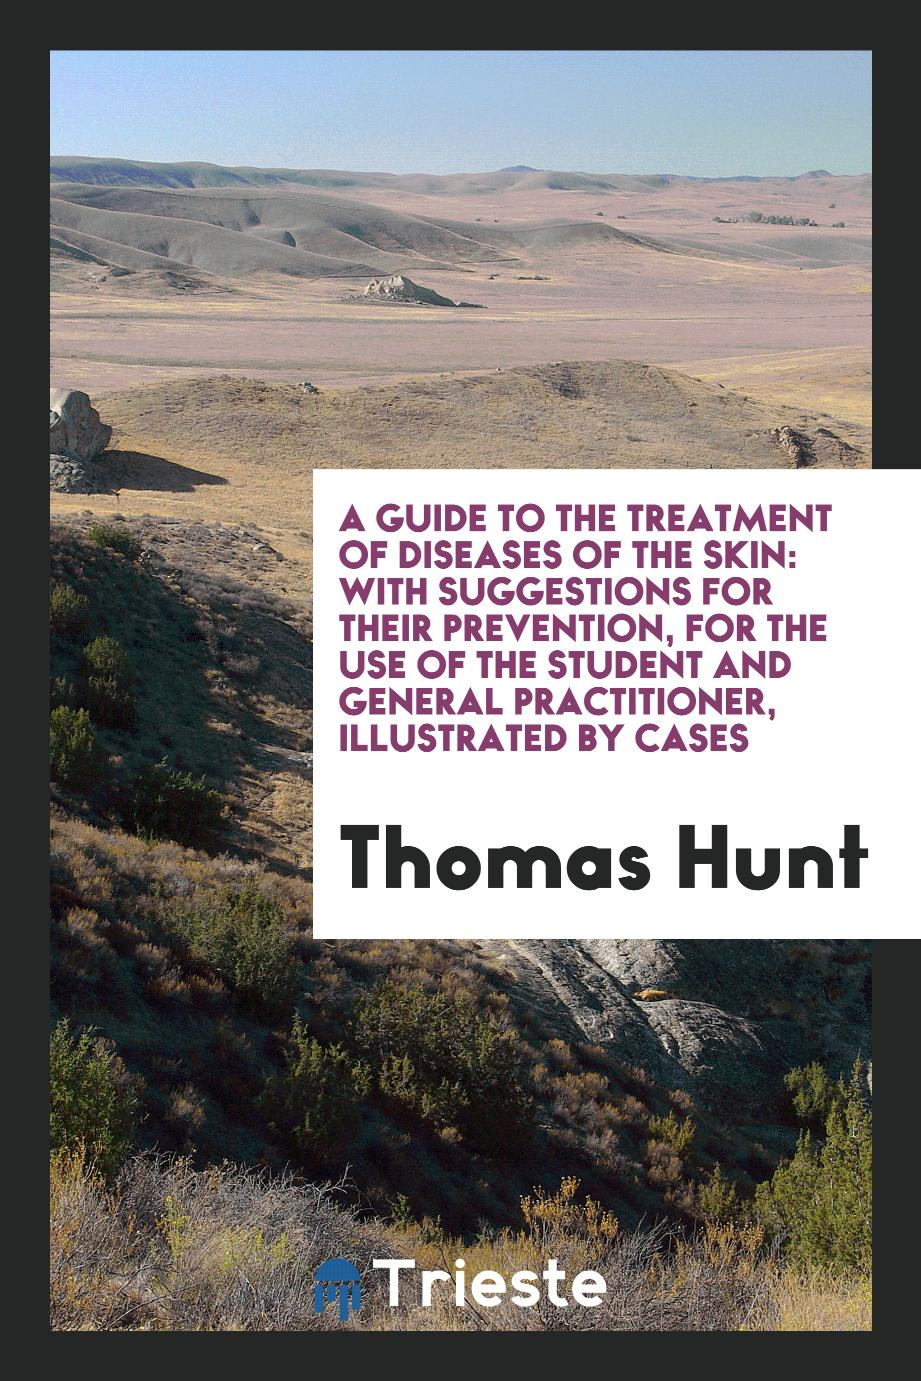 A guide to the treatment of diseases of the skin: with suggestions for their prevention, for the use of the student and general practitioner, illustrated by cases